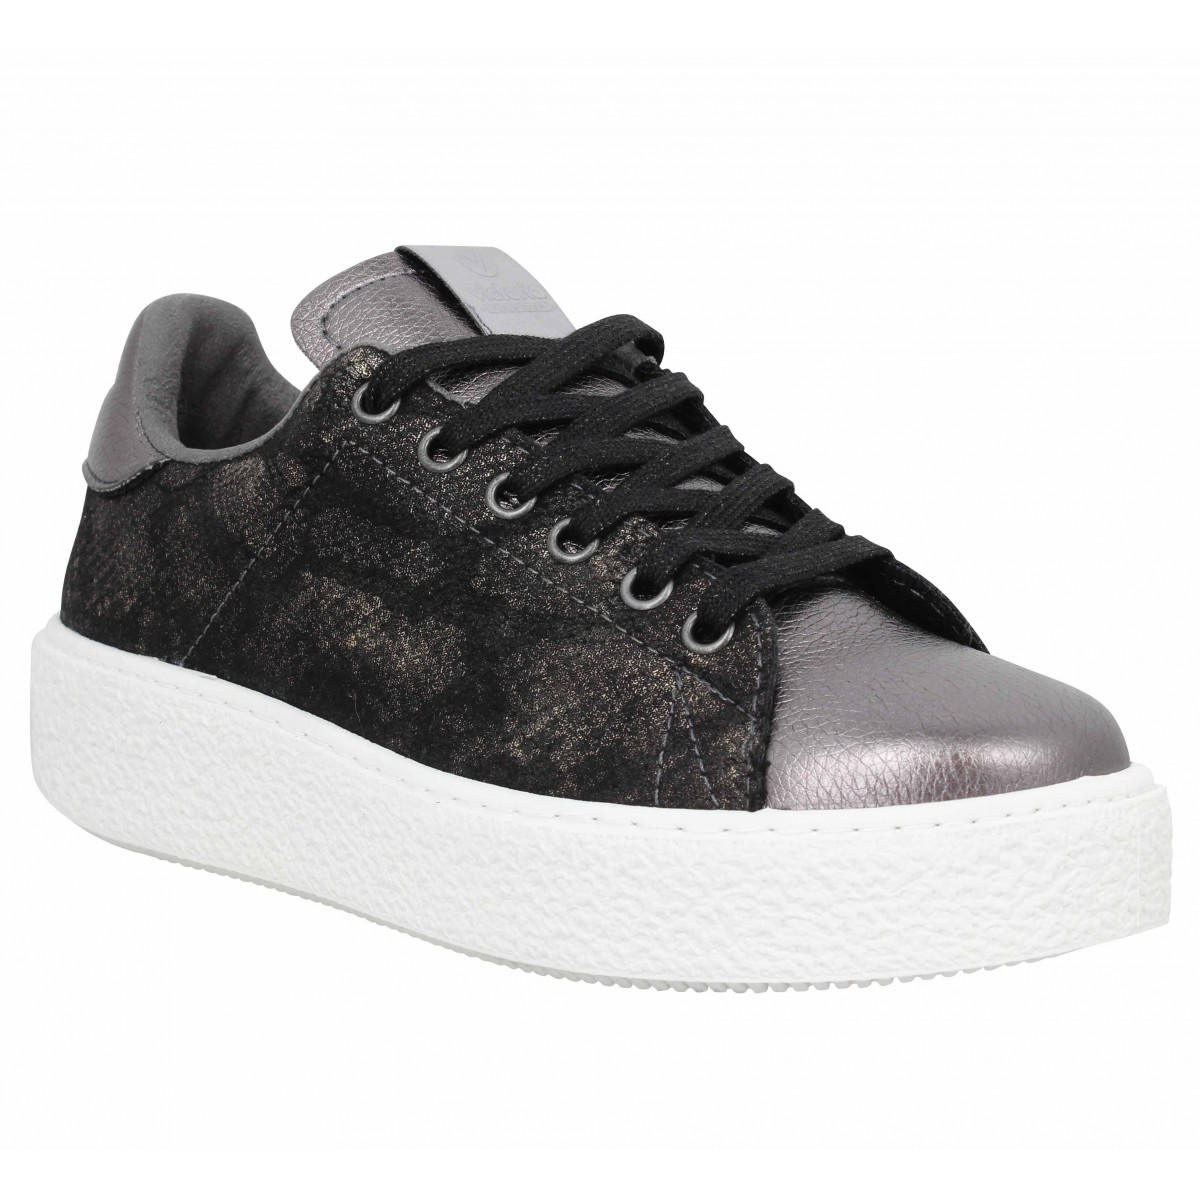 Baskets VICTORIA 12621 reptile Femme Anthracite